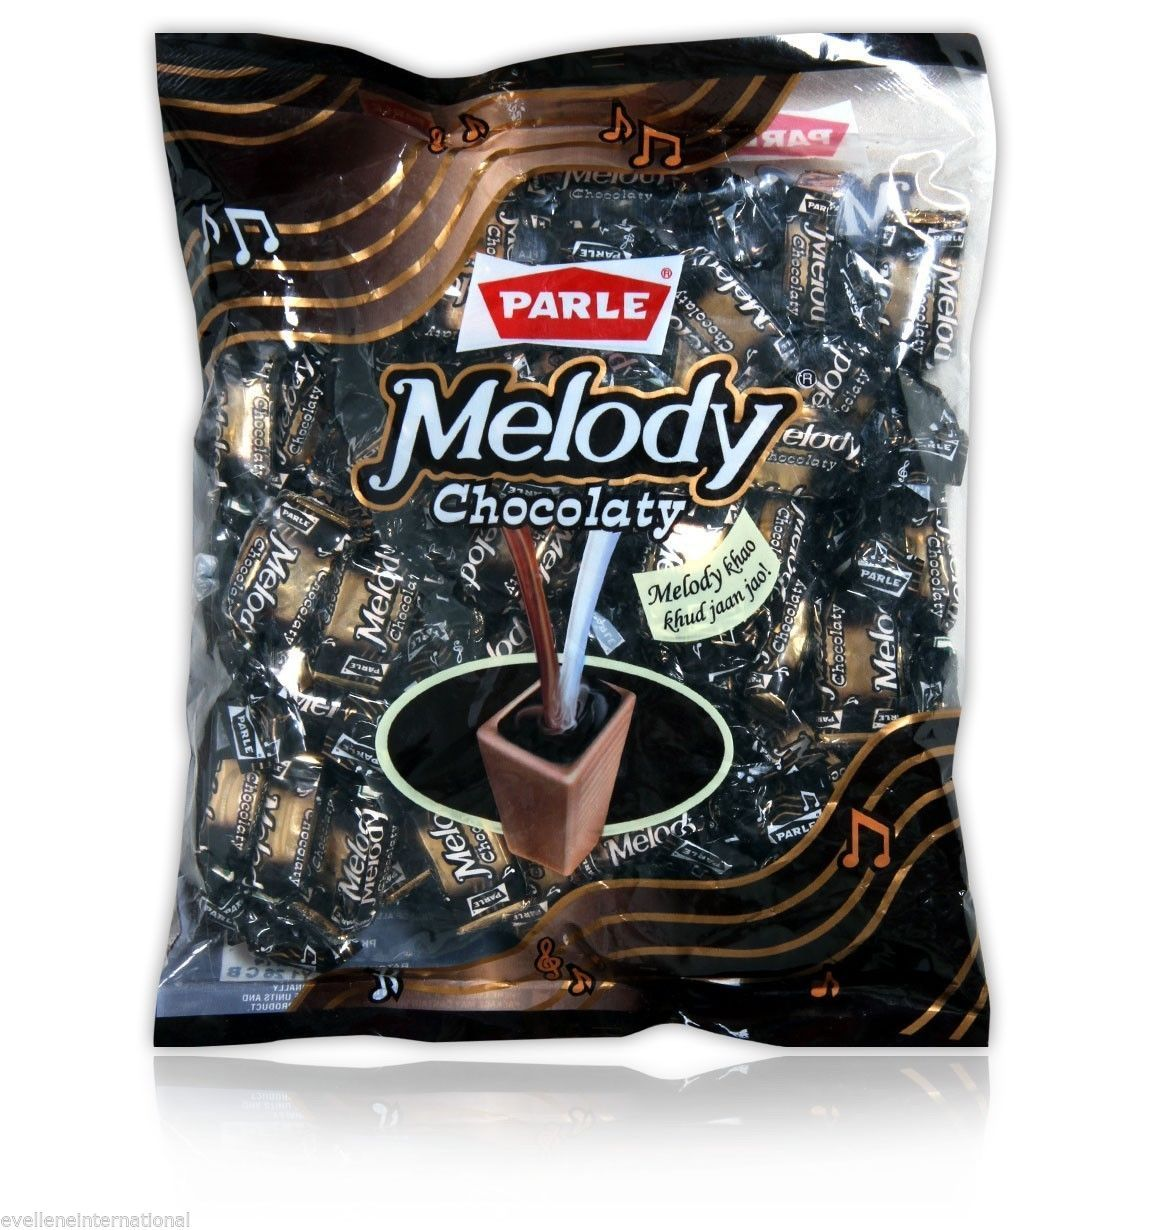 Parle Melody  Chocolaty  Chocolate  391 Gm Pouch  Candy  Melody